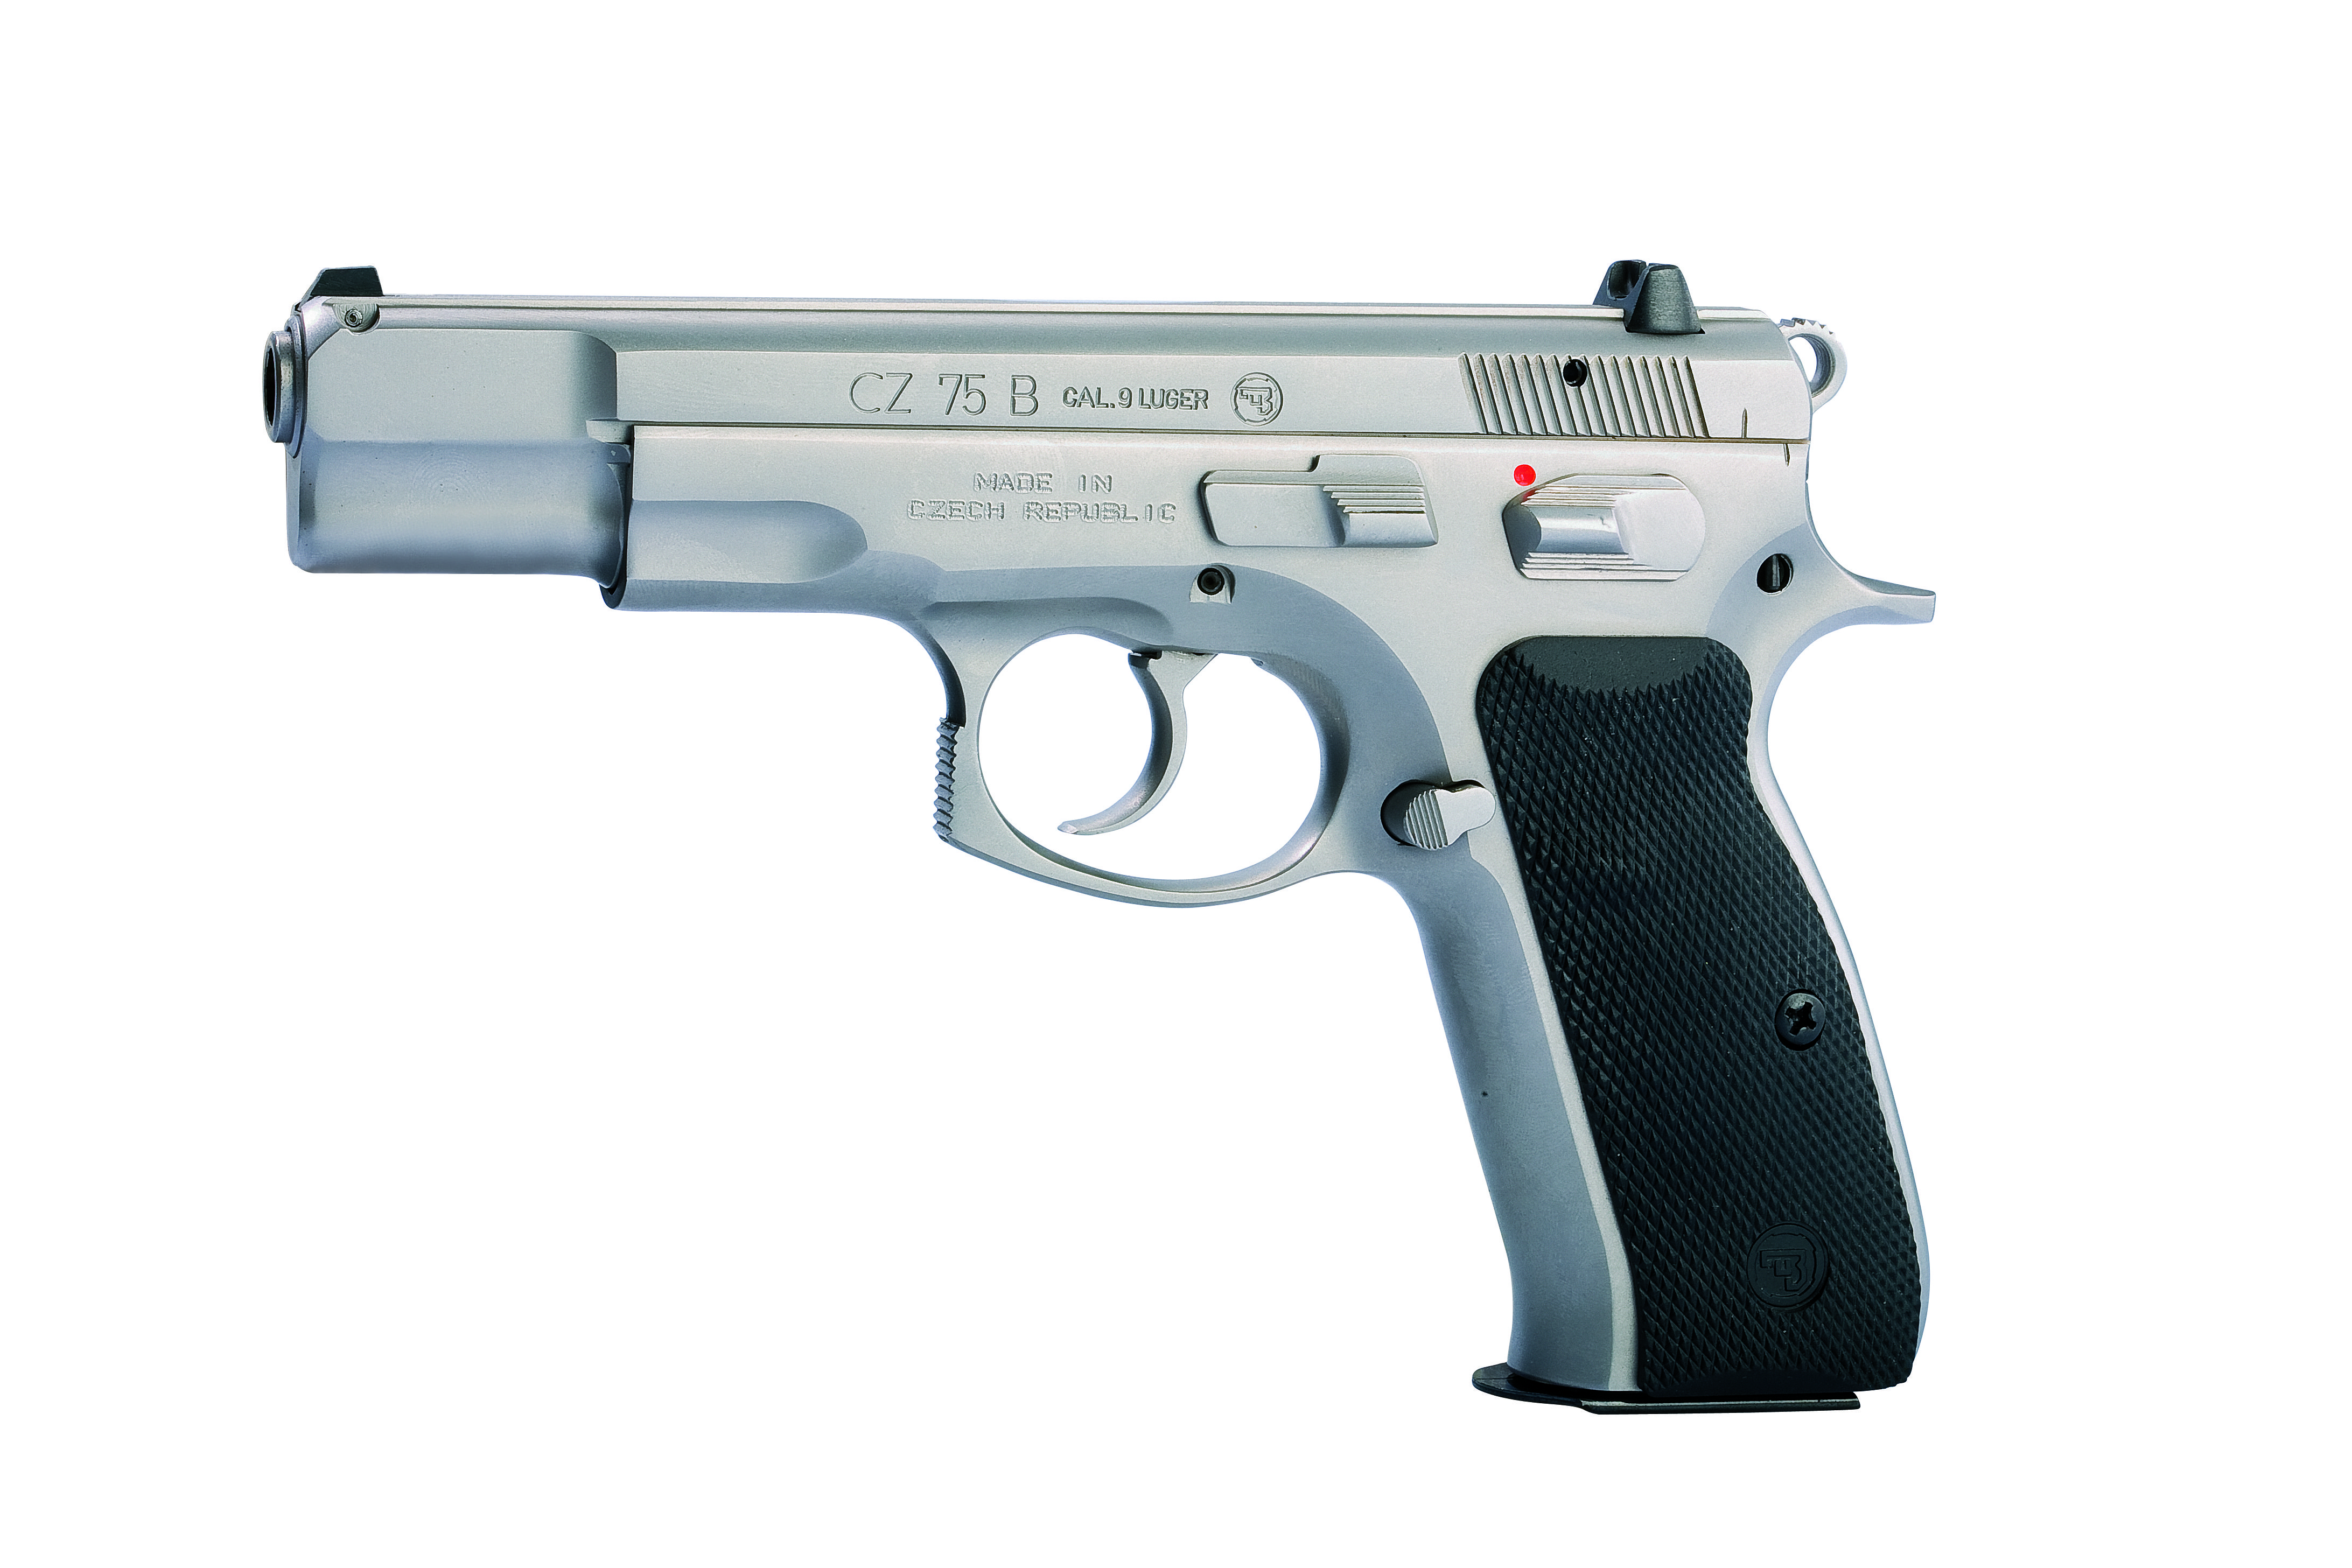 The CZ 75 B STAINLESS is based on the classical CZ 75 B made in high